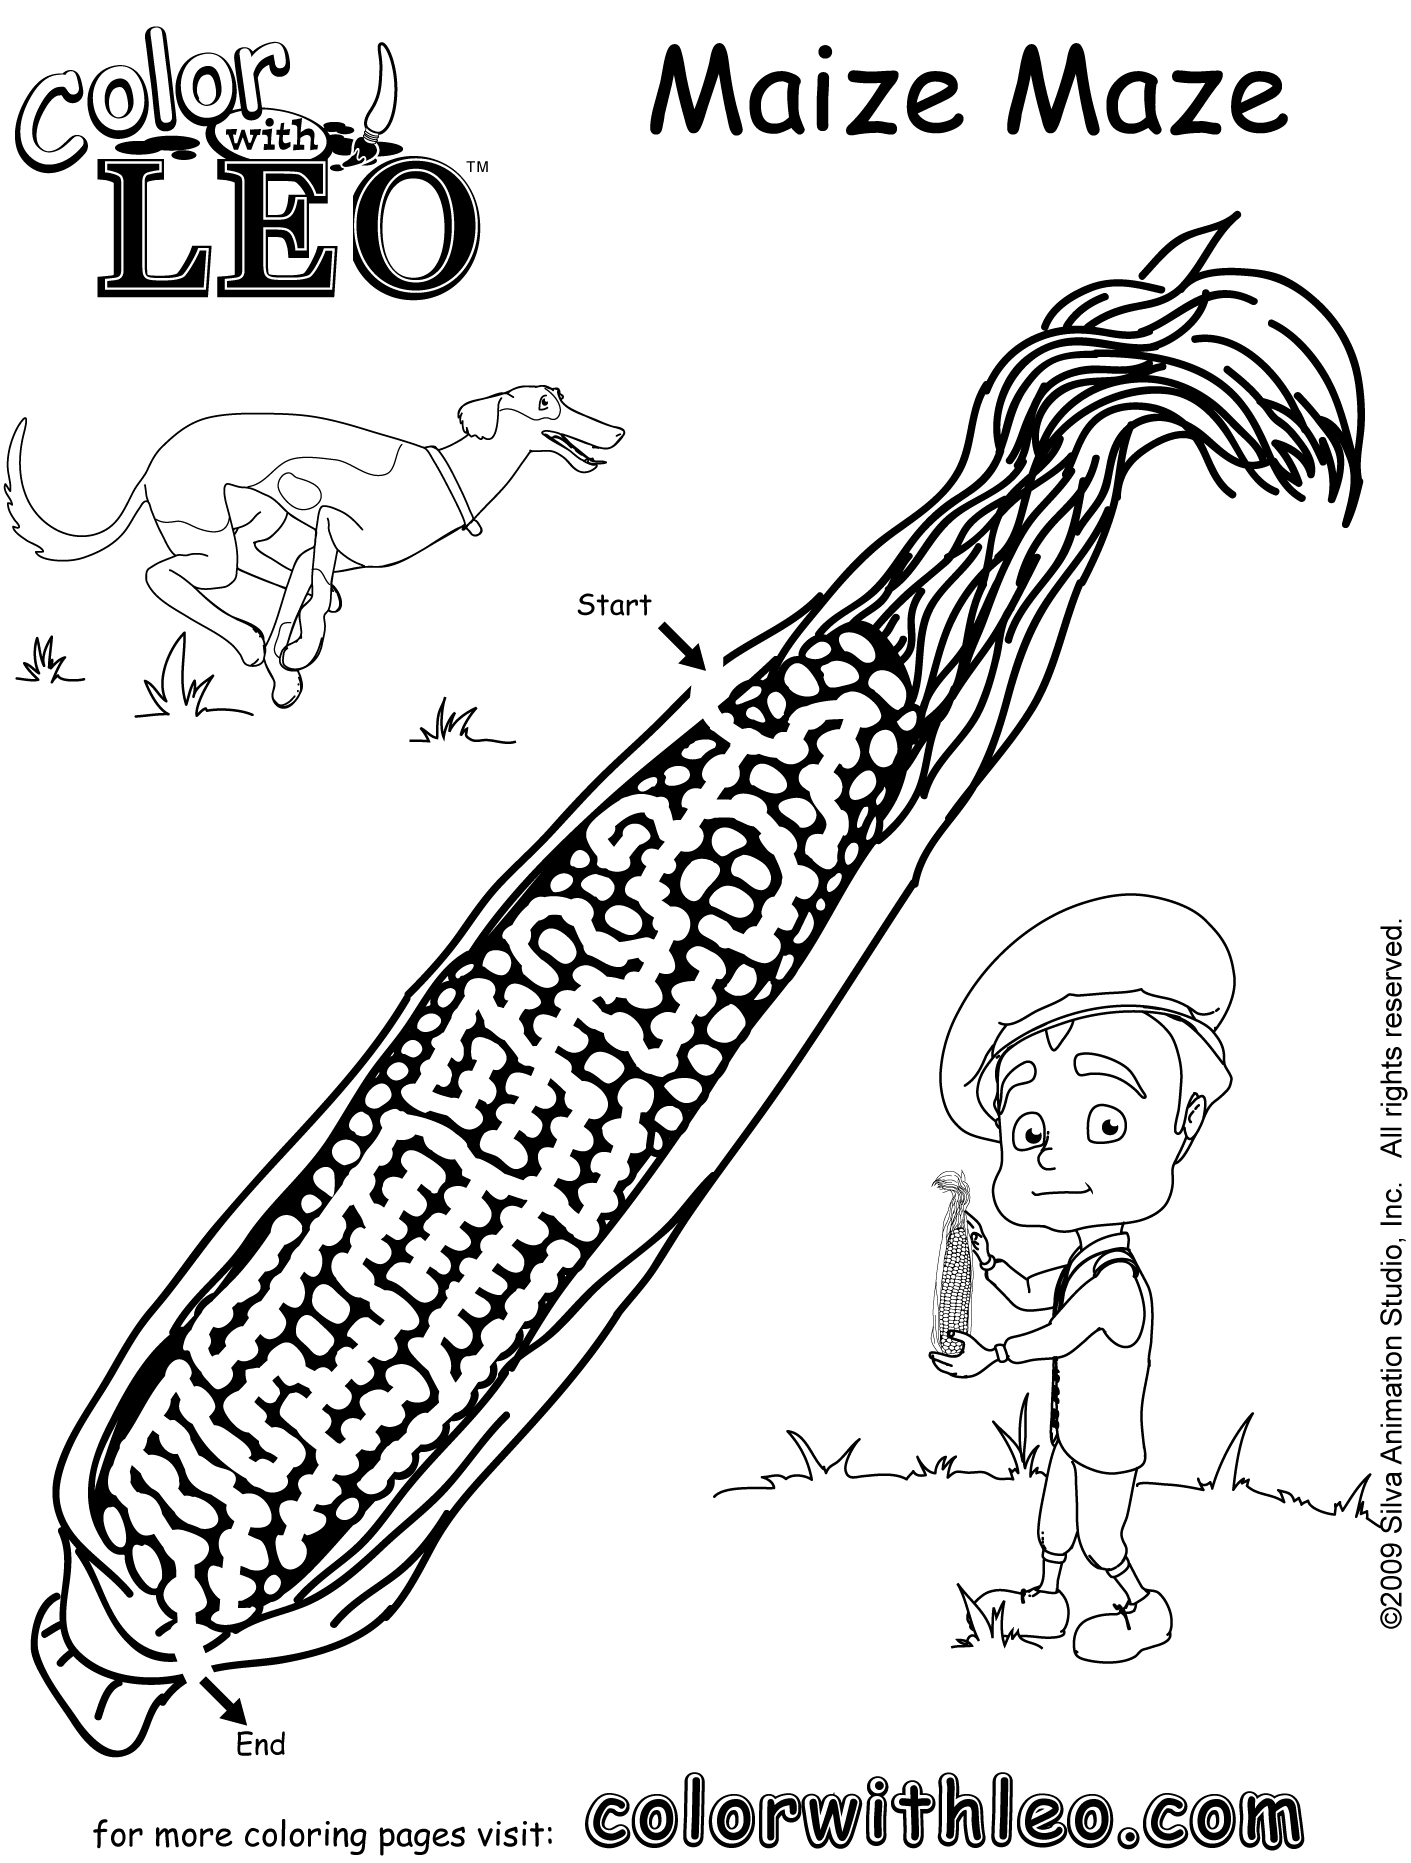 Print free seasonal coloring pages of puzzles and games